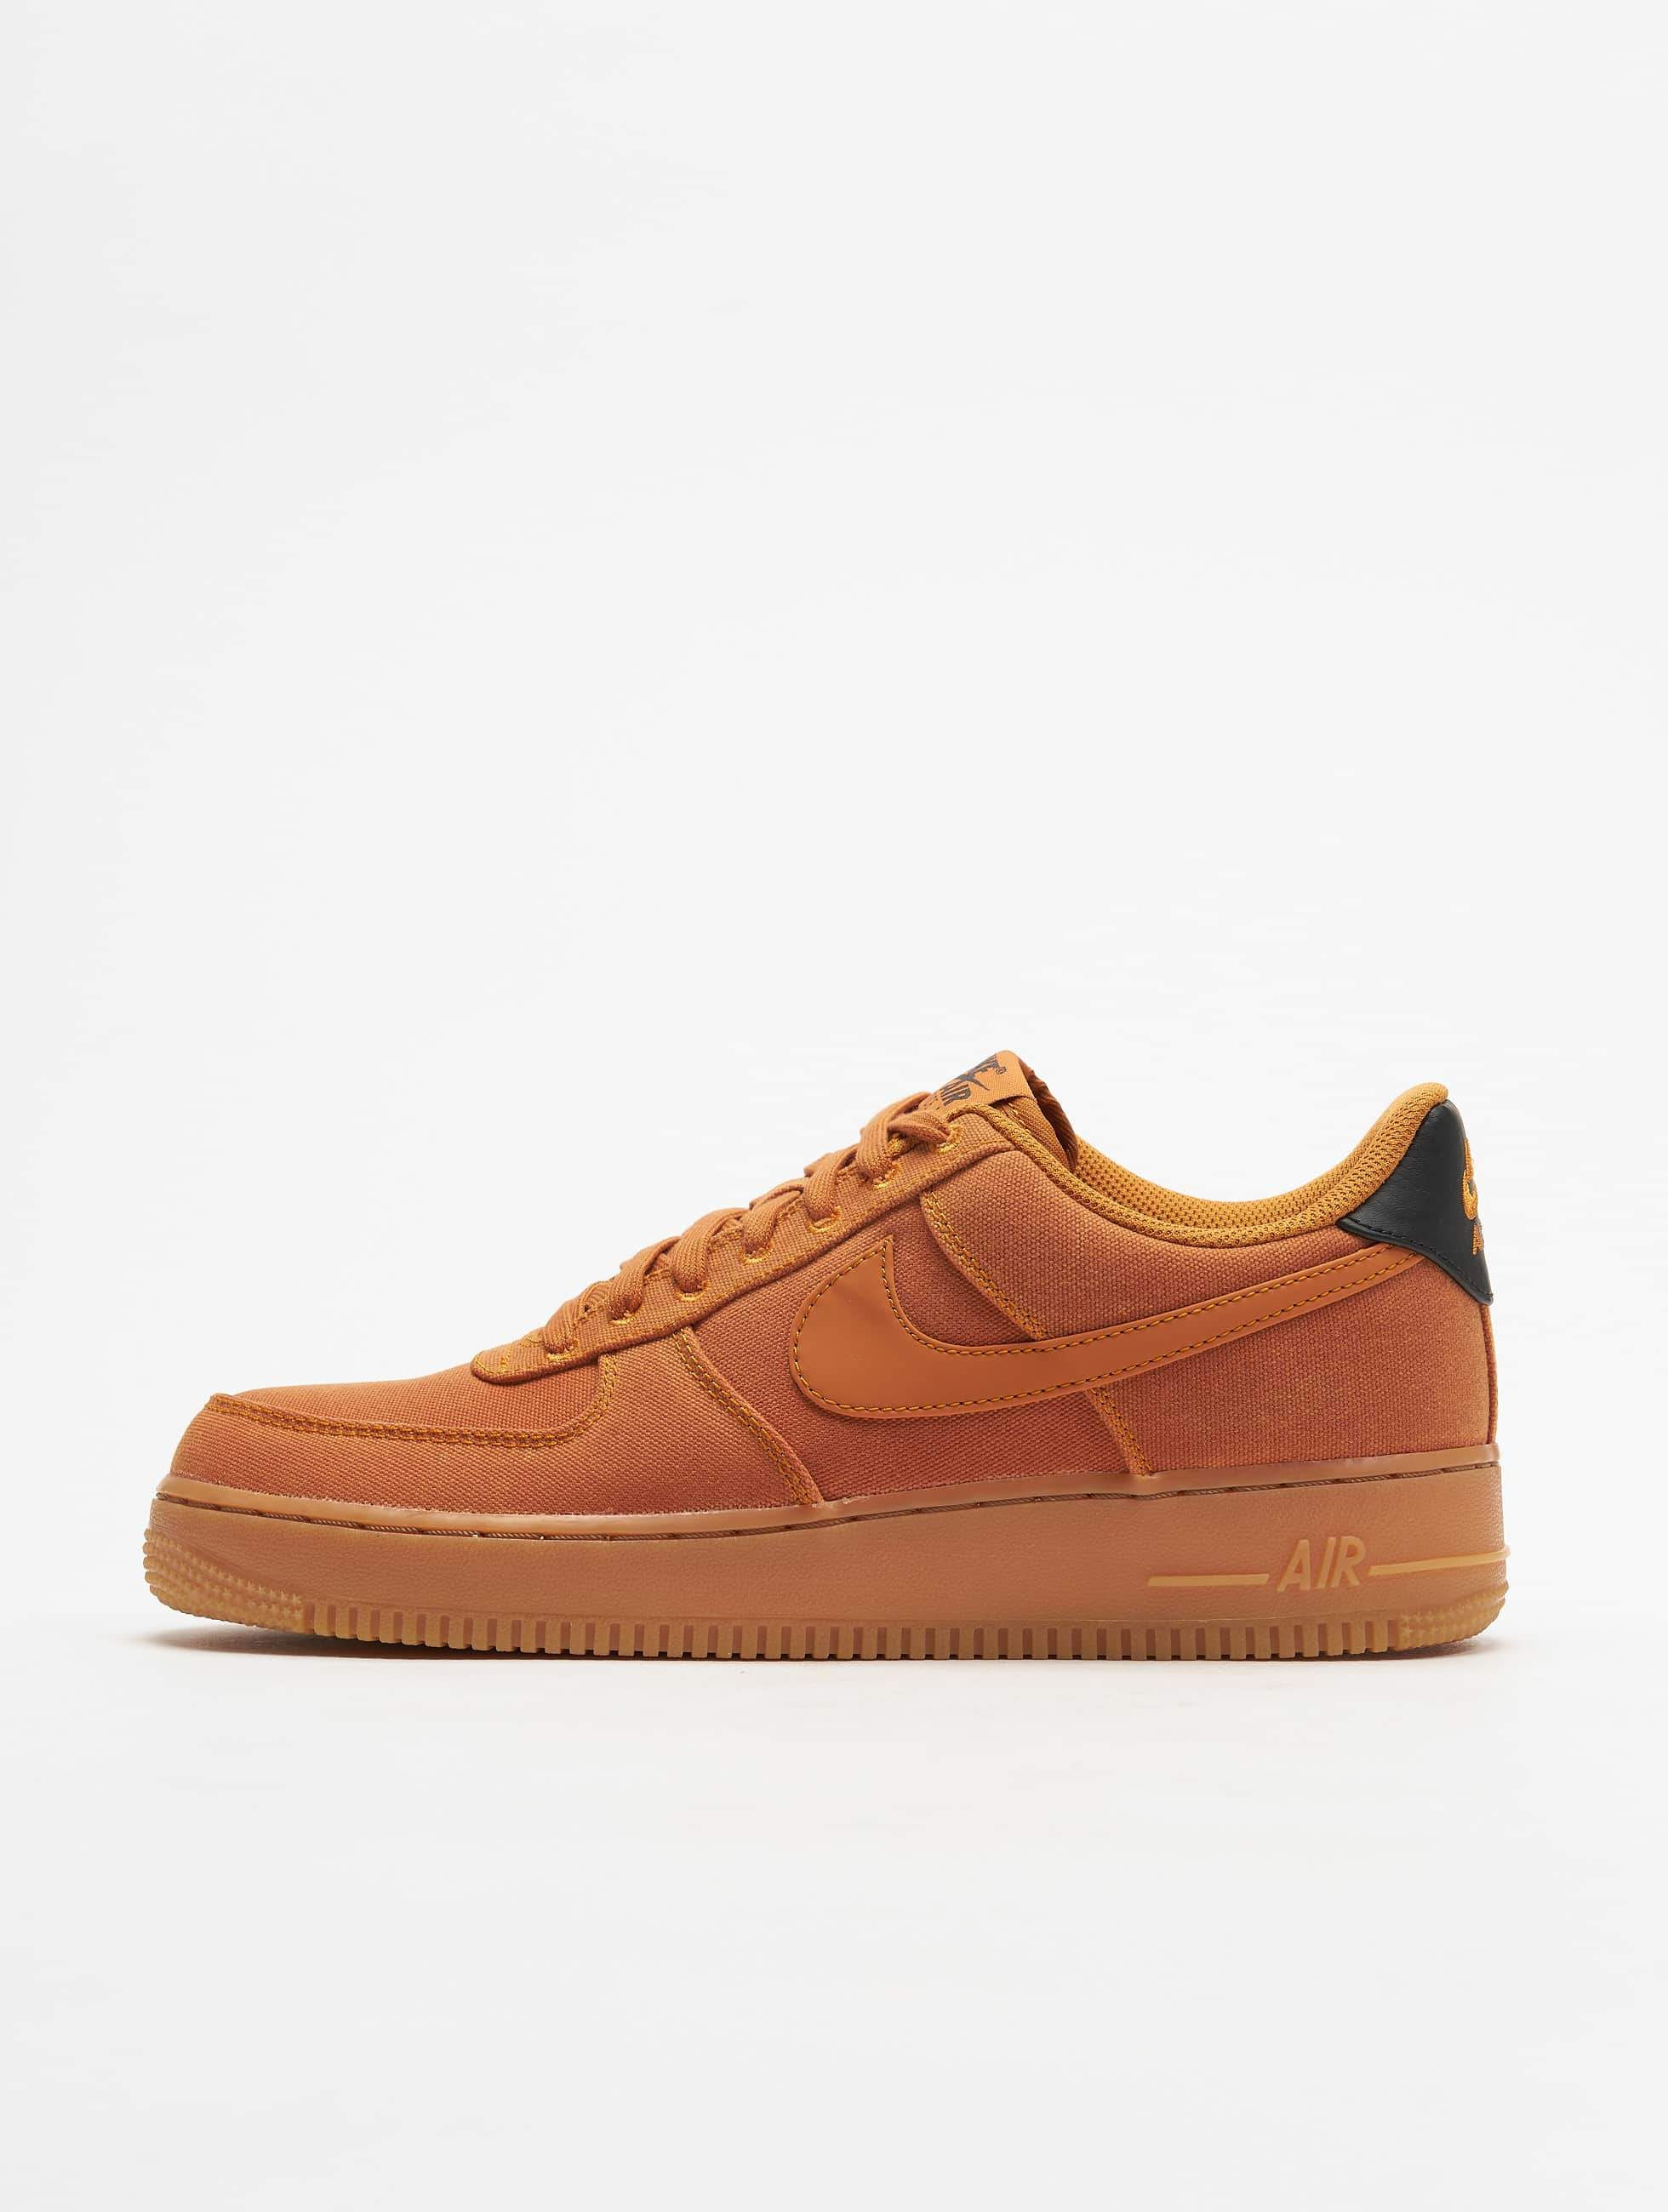 723db388acf Nike schoen / sneaker Air Force 1 07 LV8 in bruin 538111